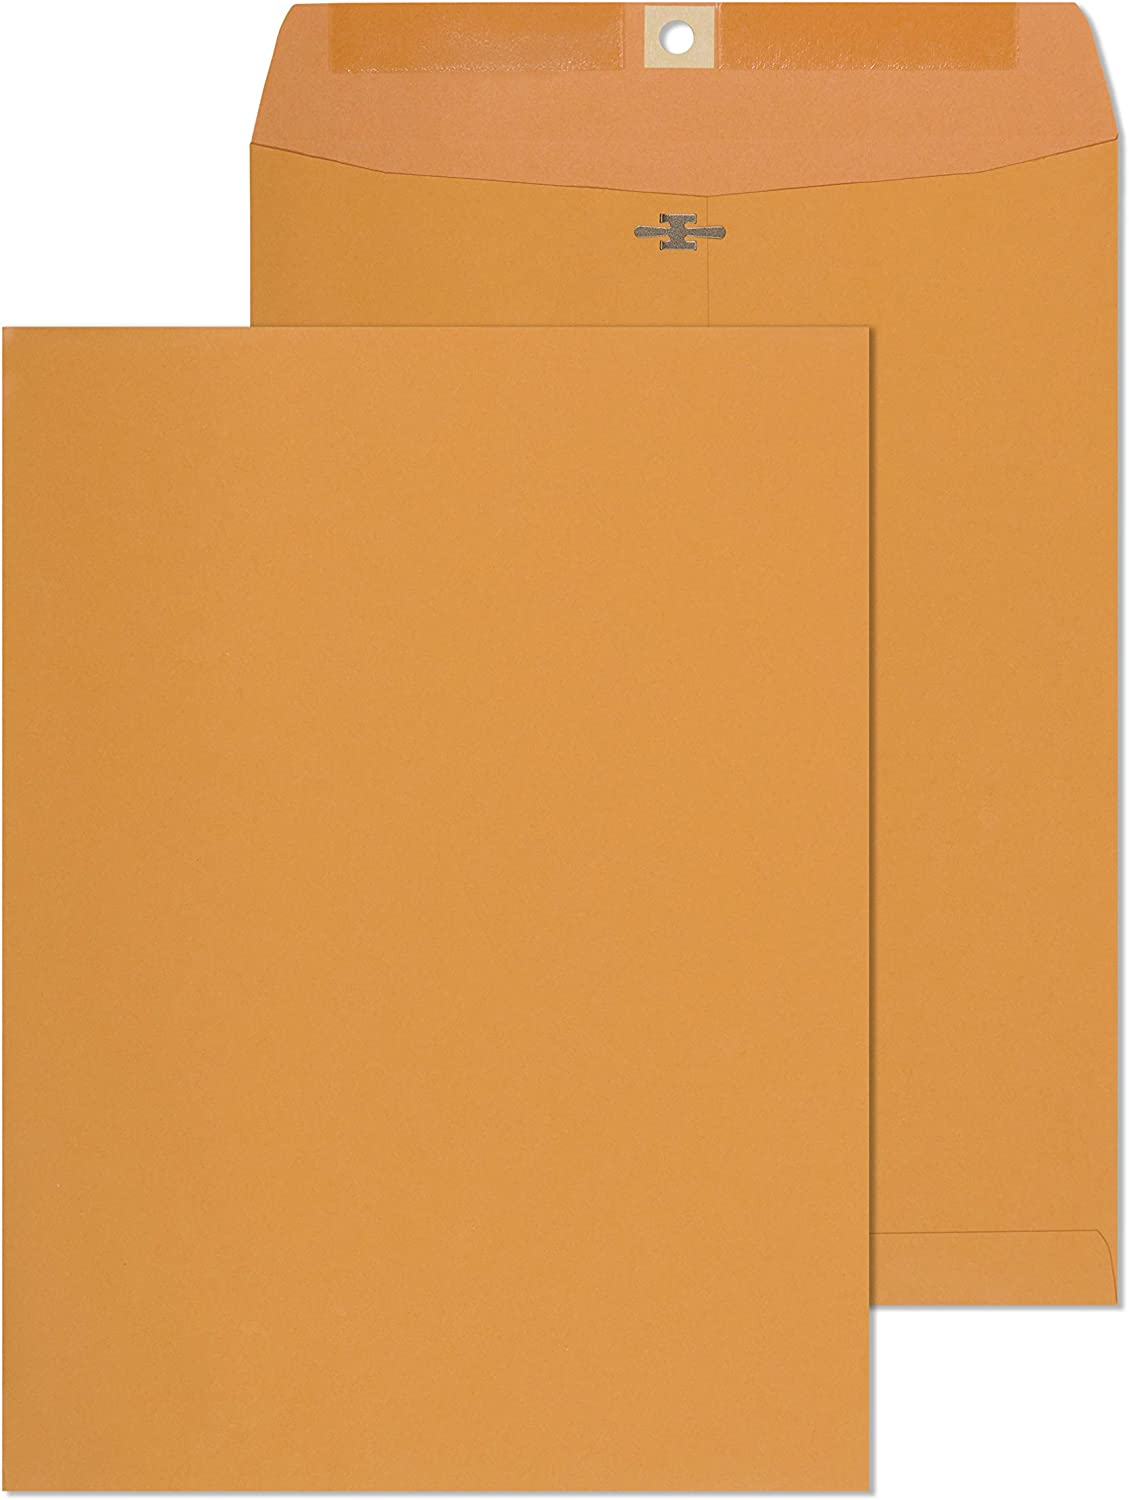 Clasp Envelopes – 9.5x12 Inches Brown Kraft Catalog Envelopes with Clasp Closure & Gummed Seal – 28lb Heavyweight Paper Envelopes for Home, Office, Business, Legal or School - 30 Pack